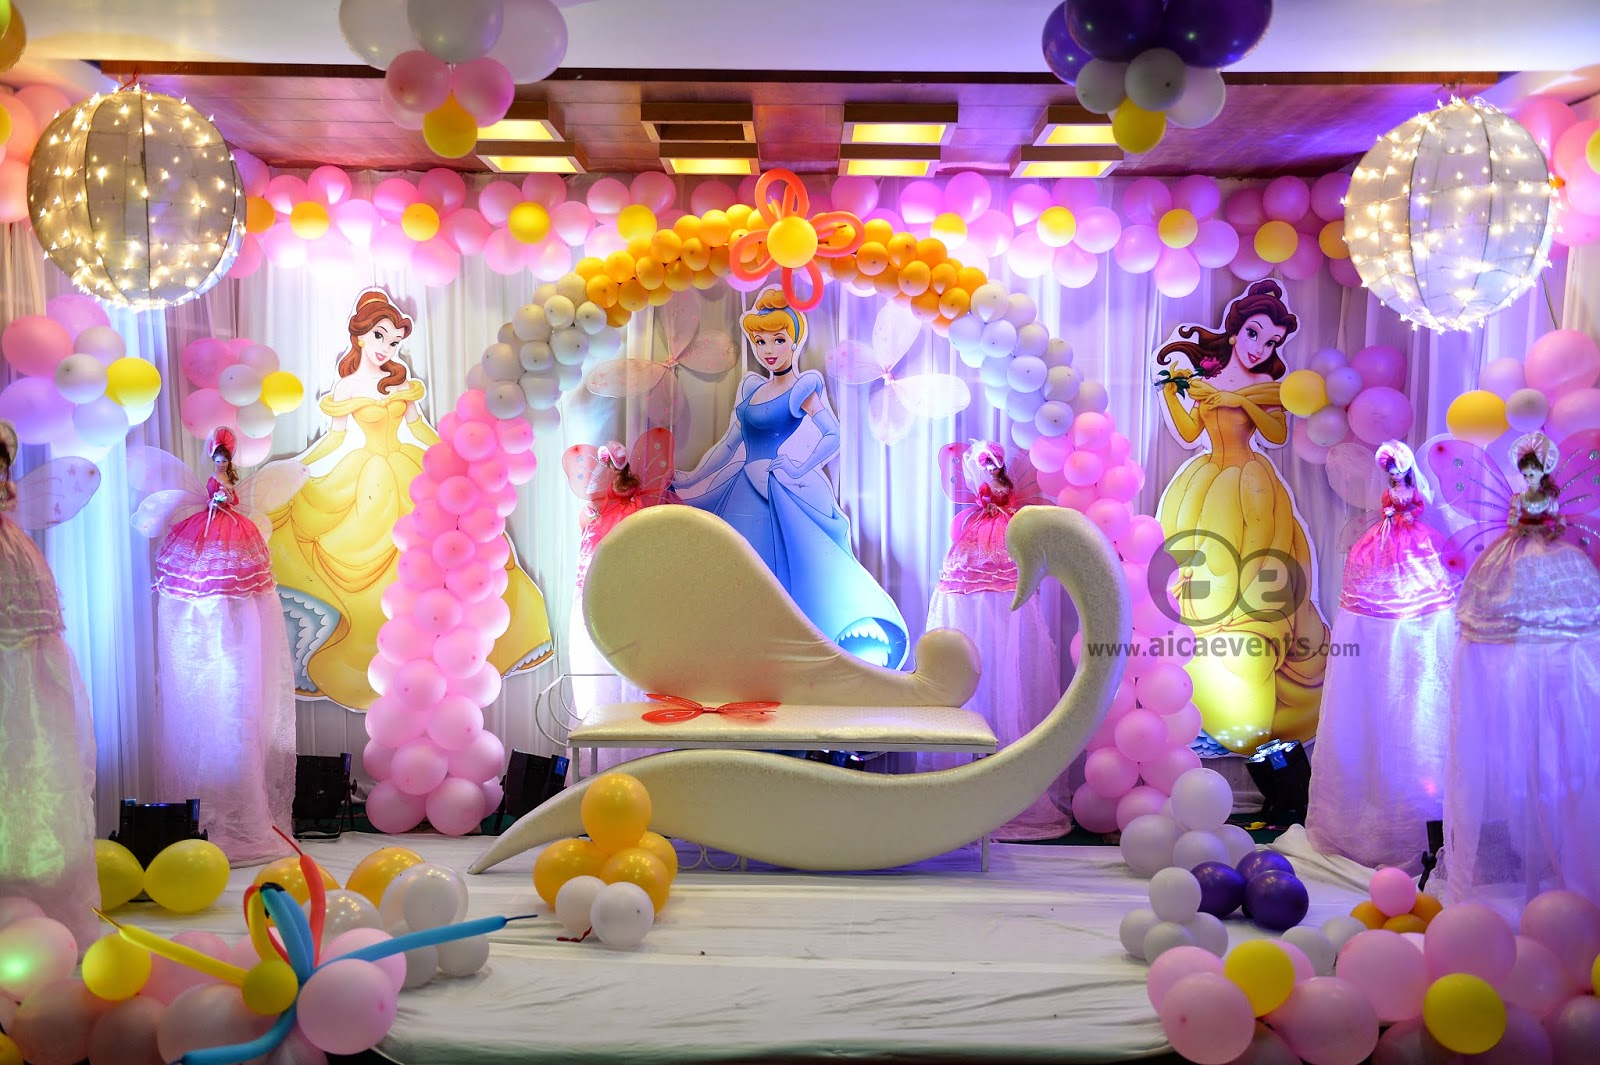 Aicaevents india barbie theme decorations by aica events for Balloon decoration birthday party chennai